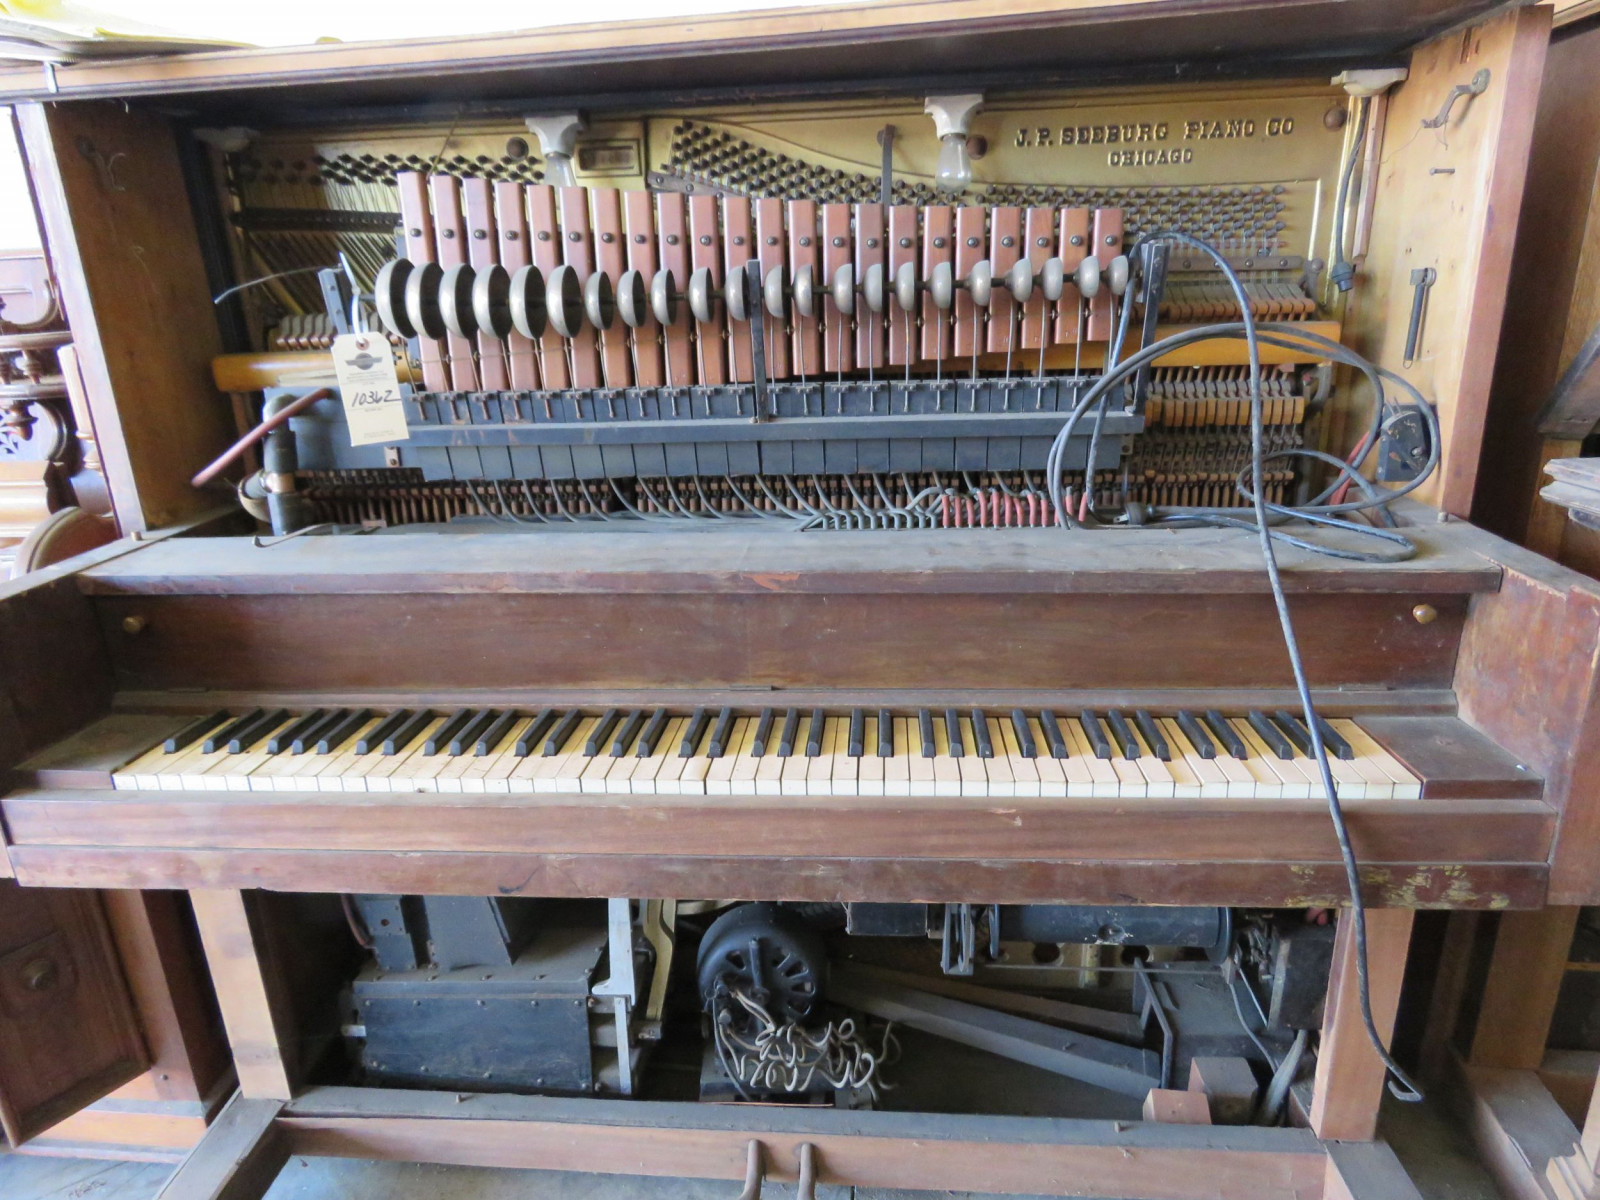 Seeburg Player Piano for project or Parts - Image 1